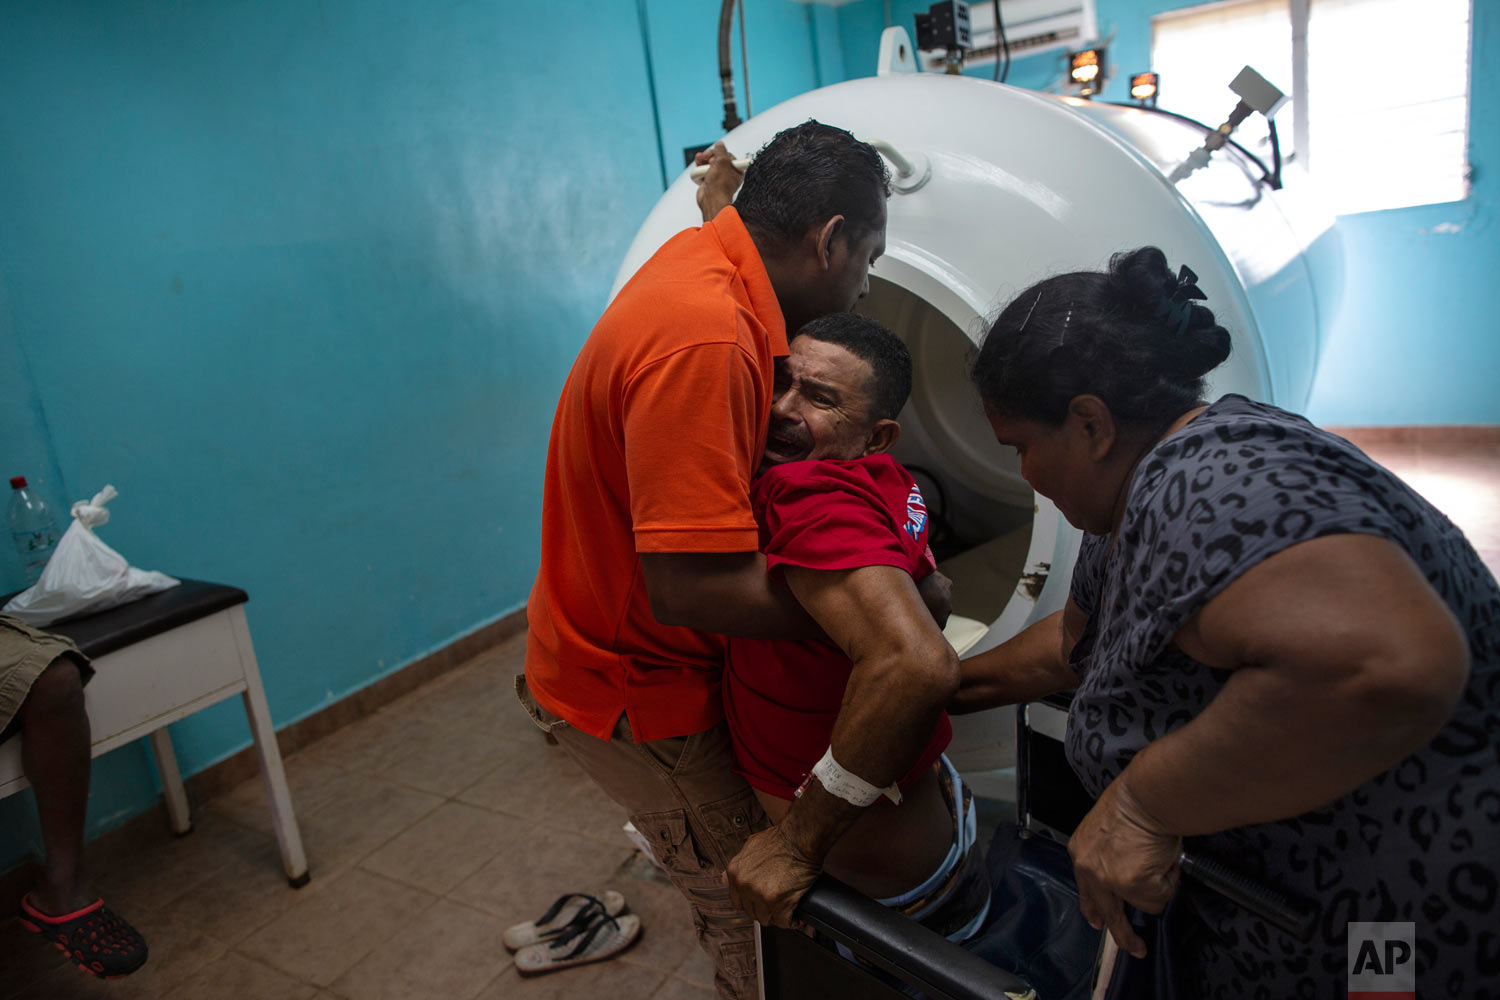 In this Feb. 9, 2018 photo, paralyzed by decompression sickness, lobster diver Misael Banegas Diaz, 49, is lifted by physical therapist Cedrak Waldan Mendoza into a hyperbaric chamber at the hospital in Puerto Lempira, Honduras. (AP Photo/Rodrigo Abd)